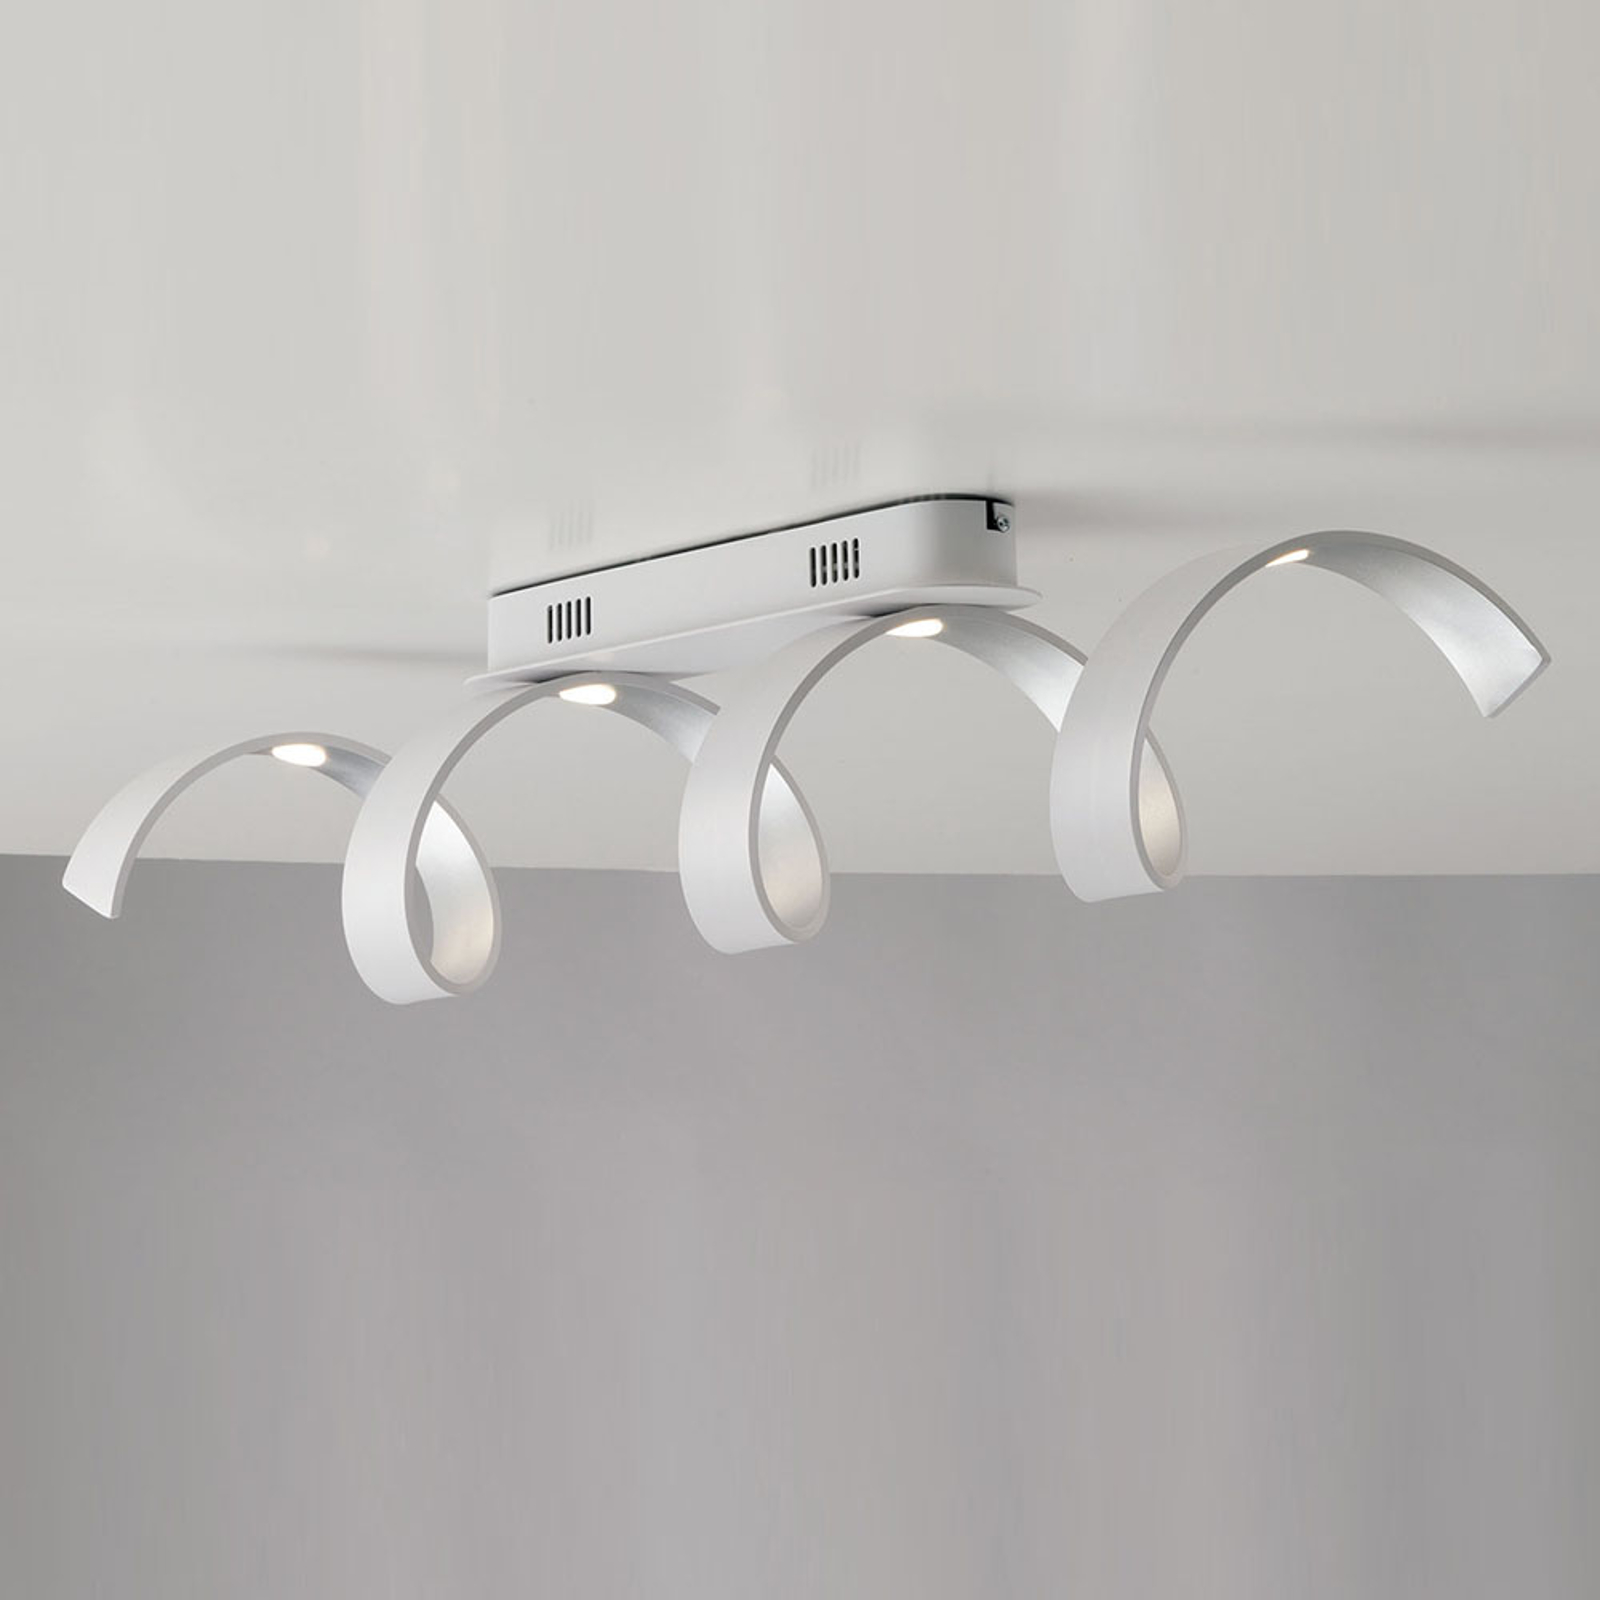 LED plafondlamp Helix in wit-zilver